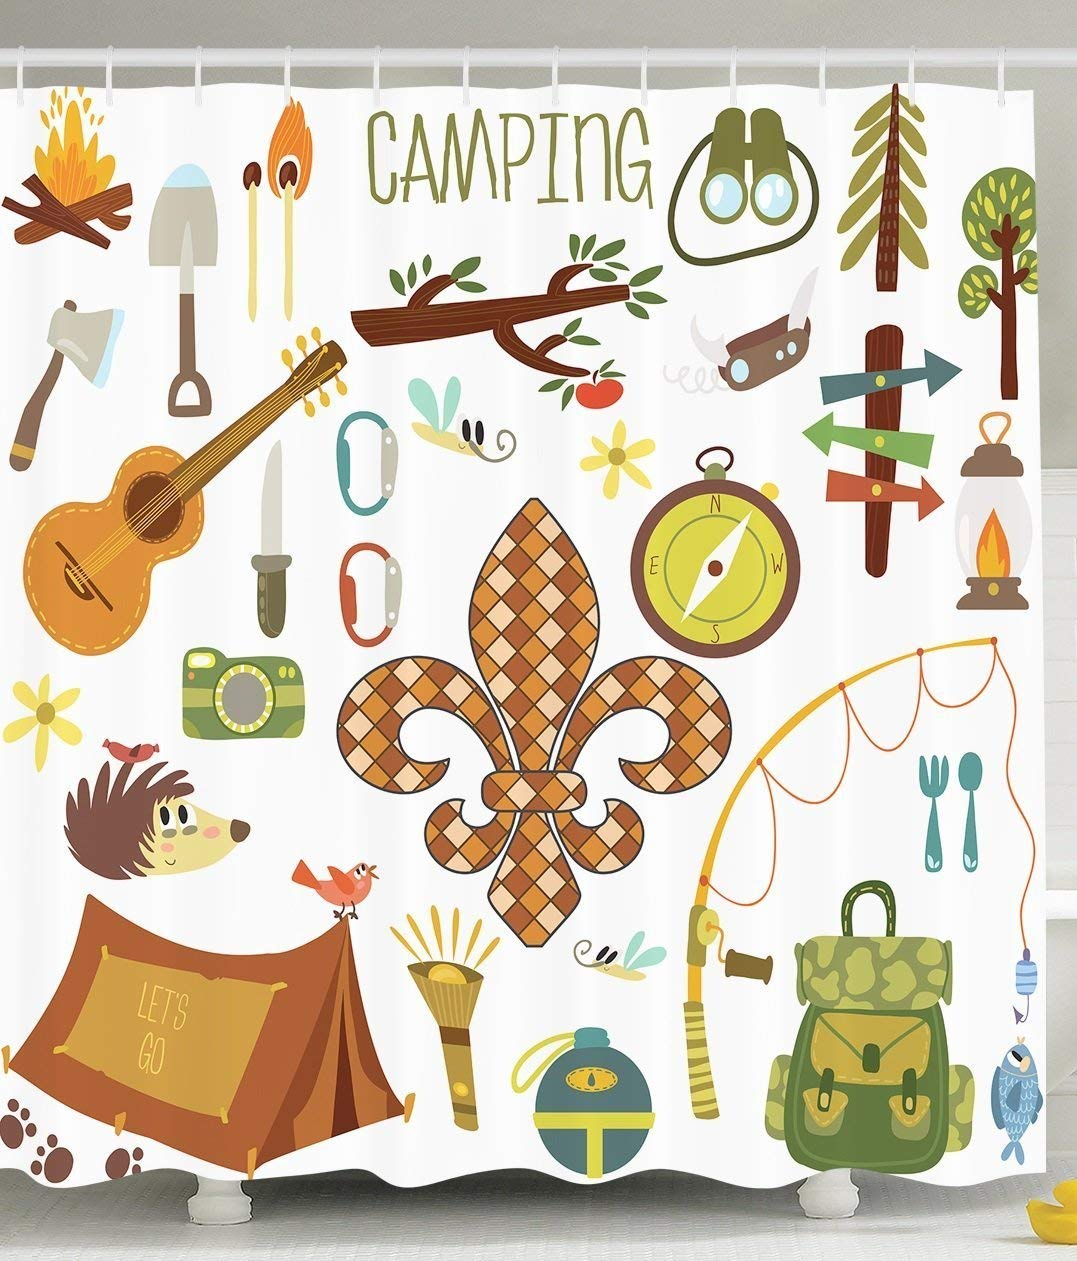 Fleur De Lis Shower Curtain Camping Equipments Boy Scout Campfire Symbol Fishing Lure Fancy Decorations Lake House Decor In Curtains From Home